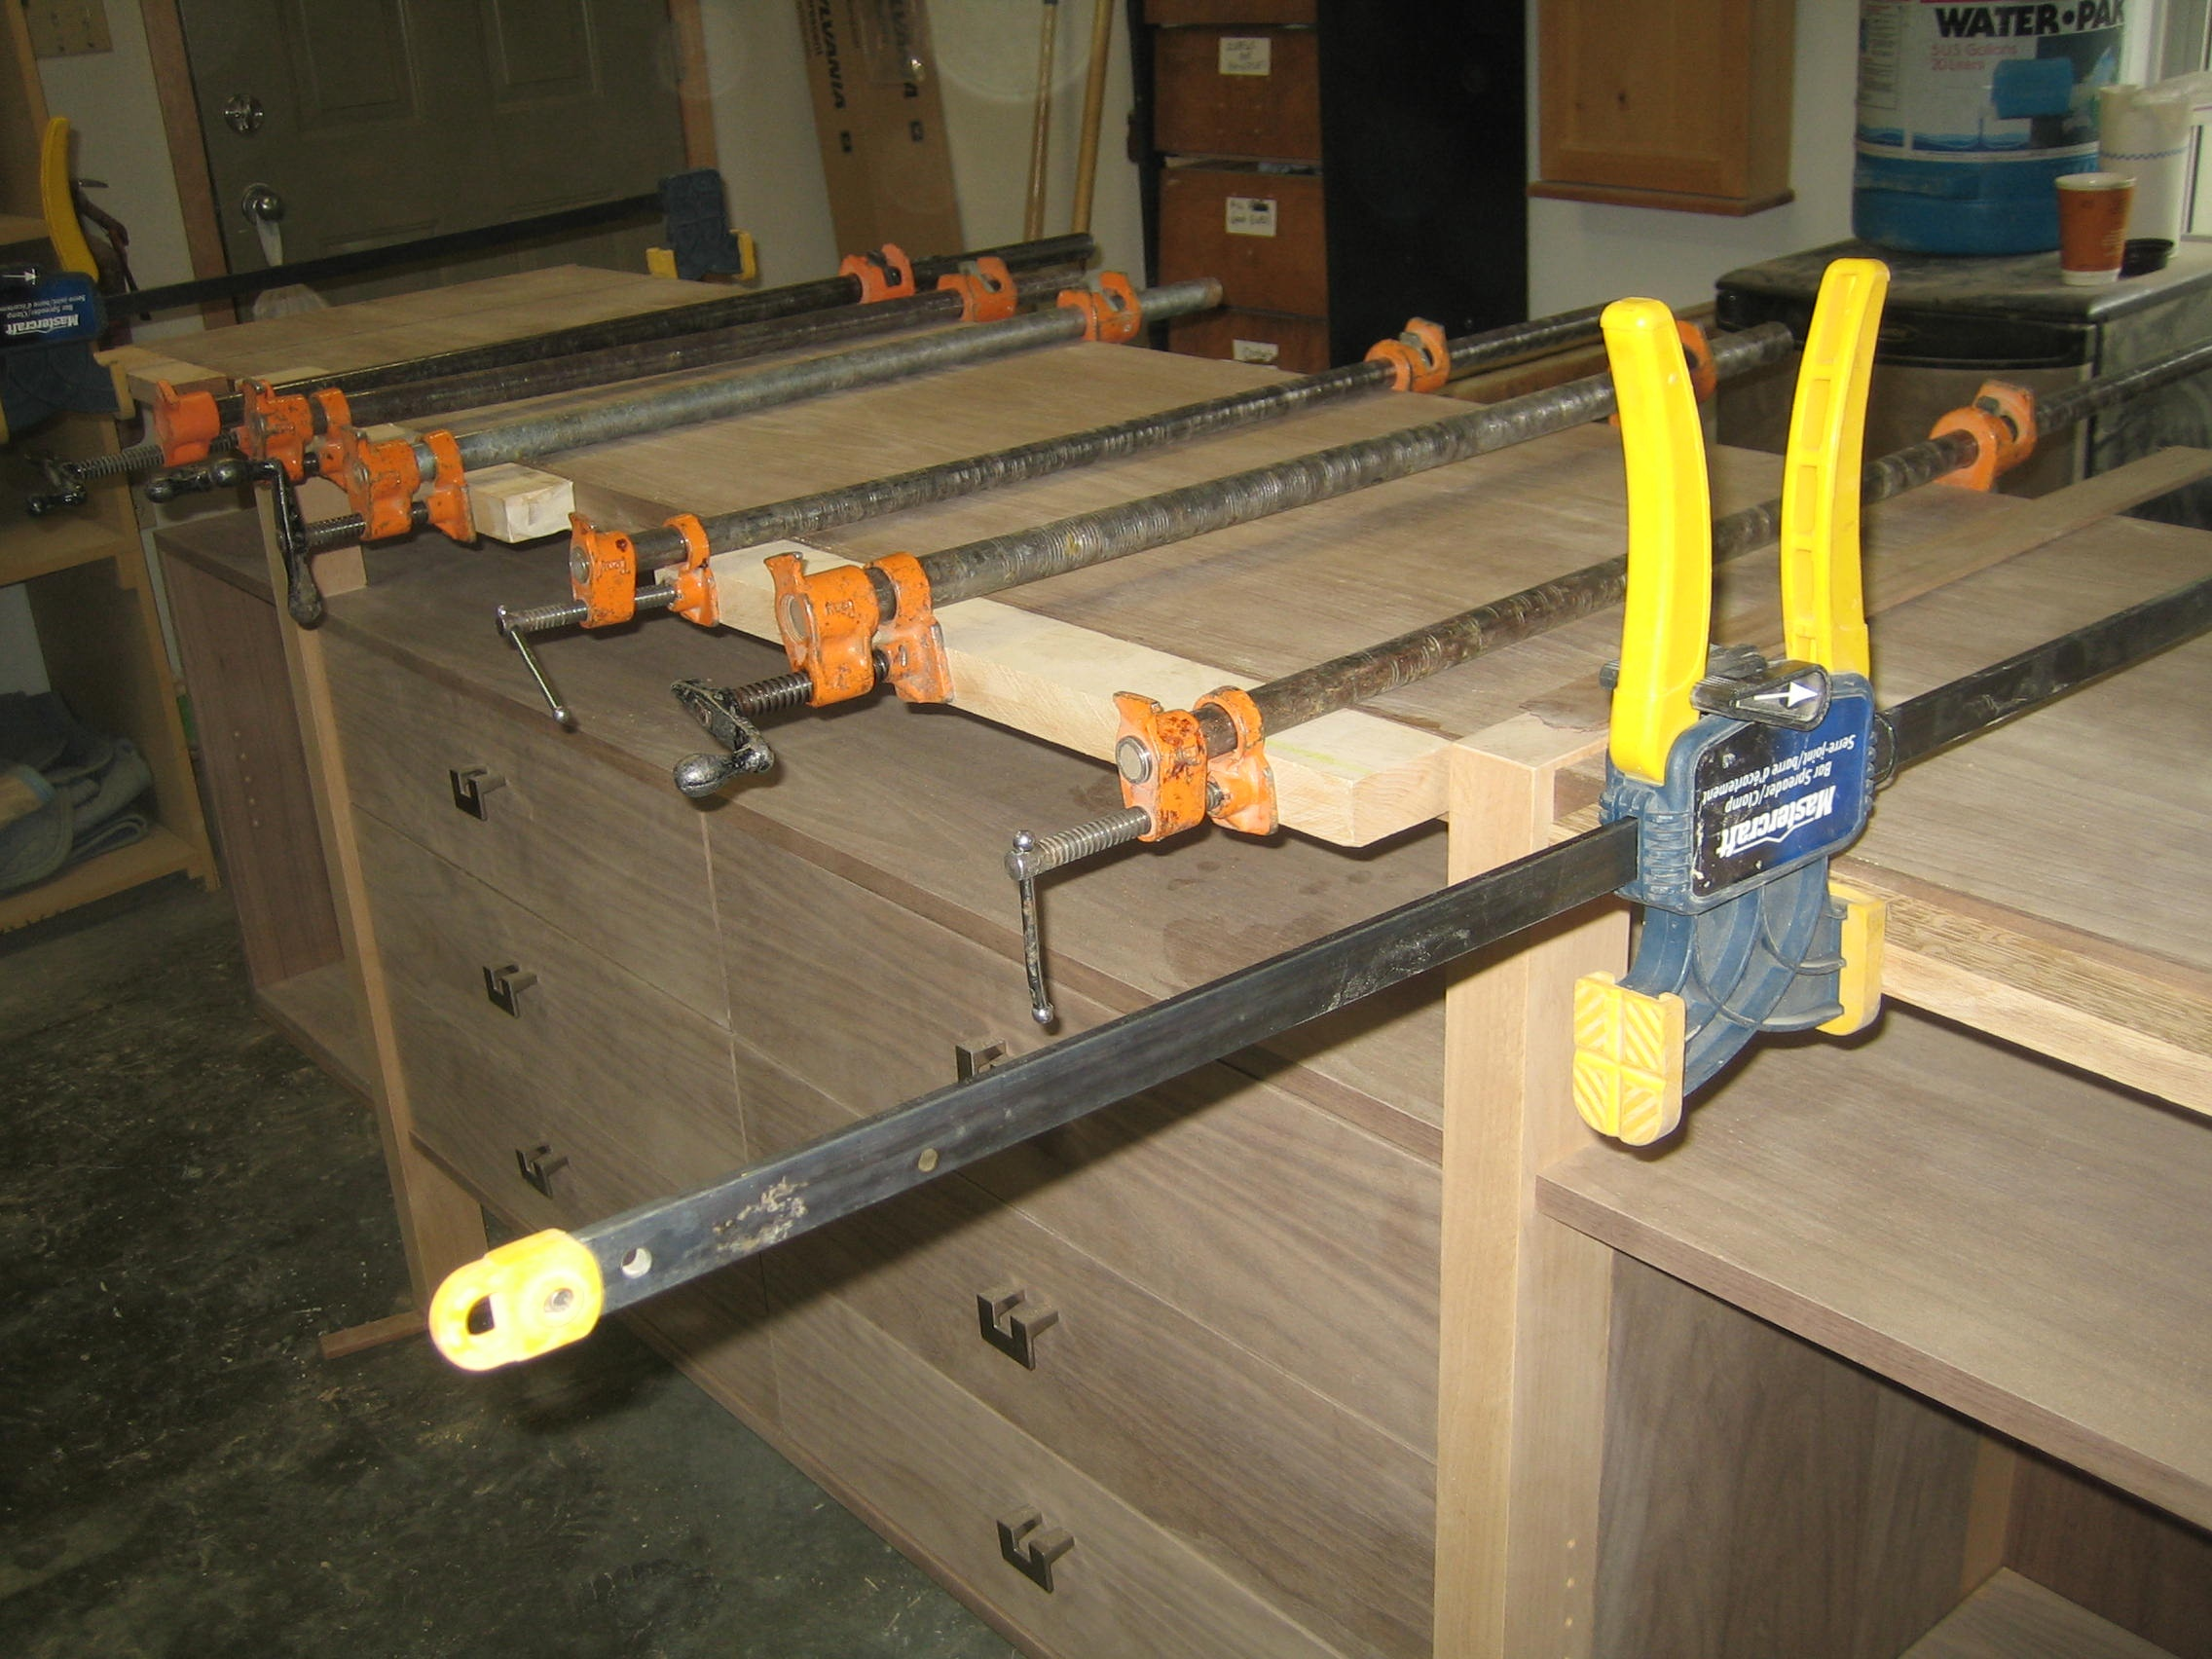 Clamping Hard-Wearing Edges